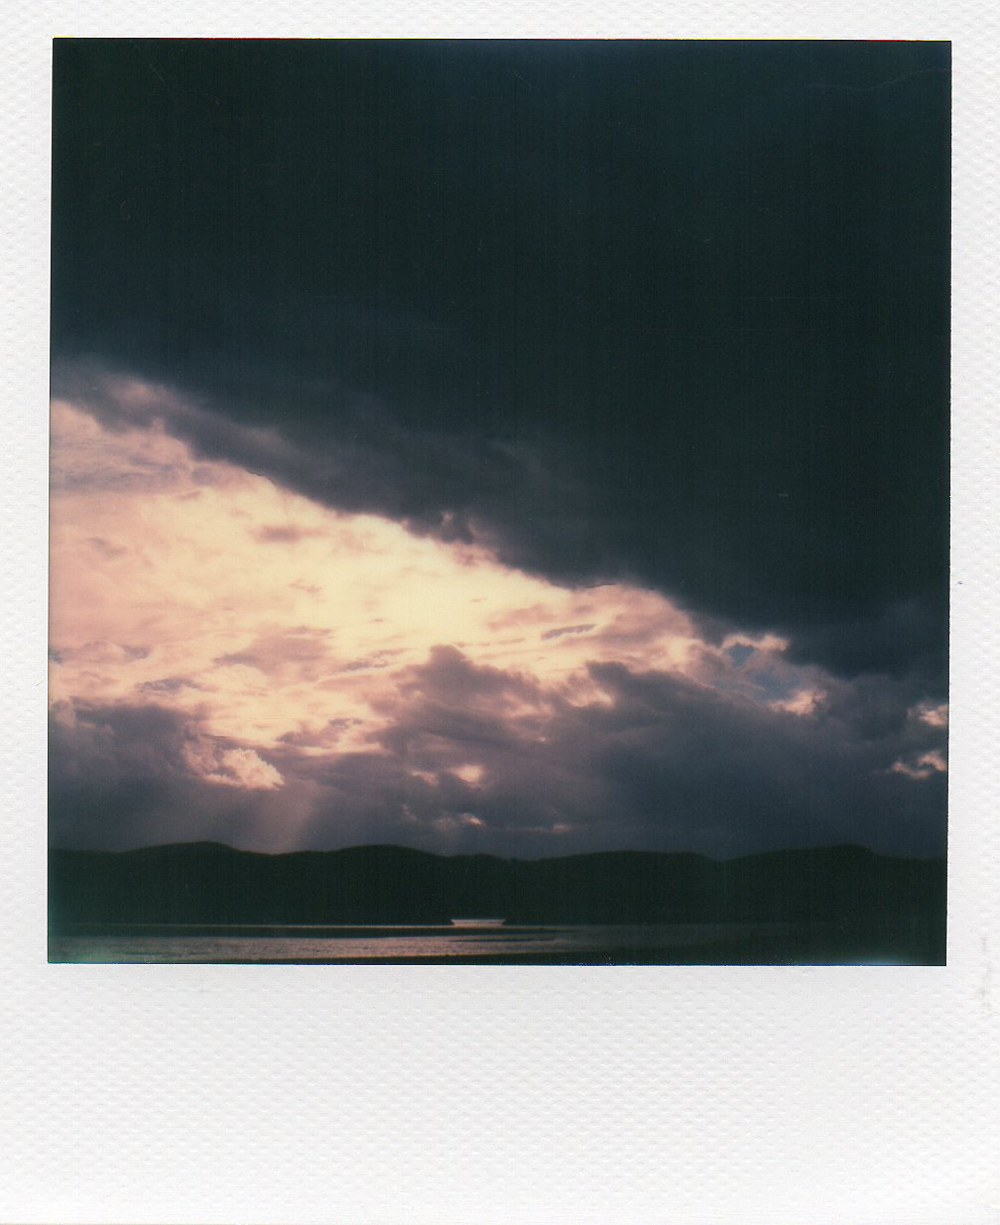 SkyScapes 3 | SX70 | Impossible Project Film | Lusy Incera Bustio